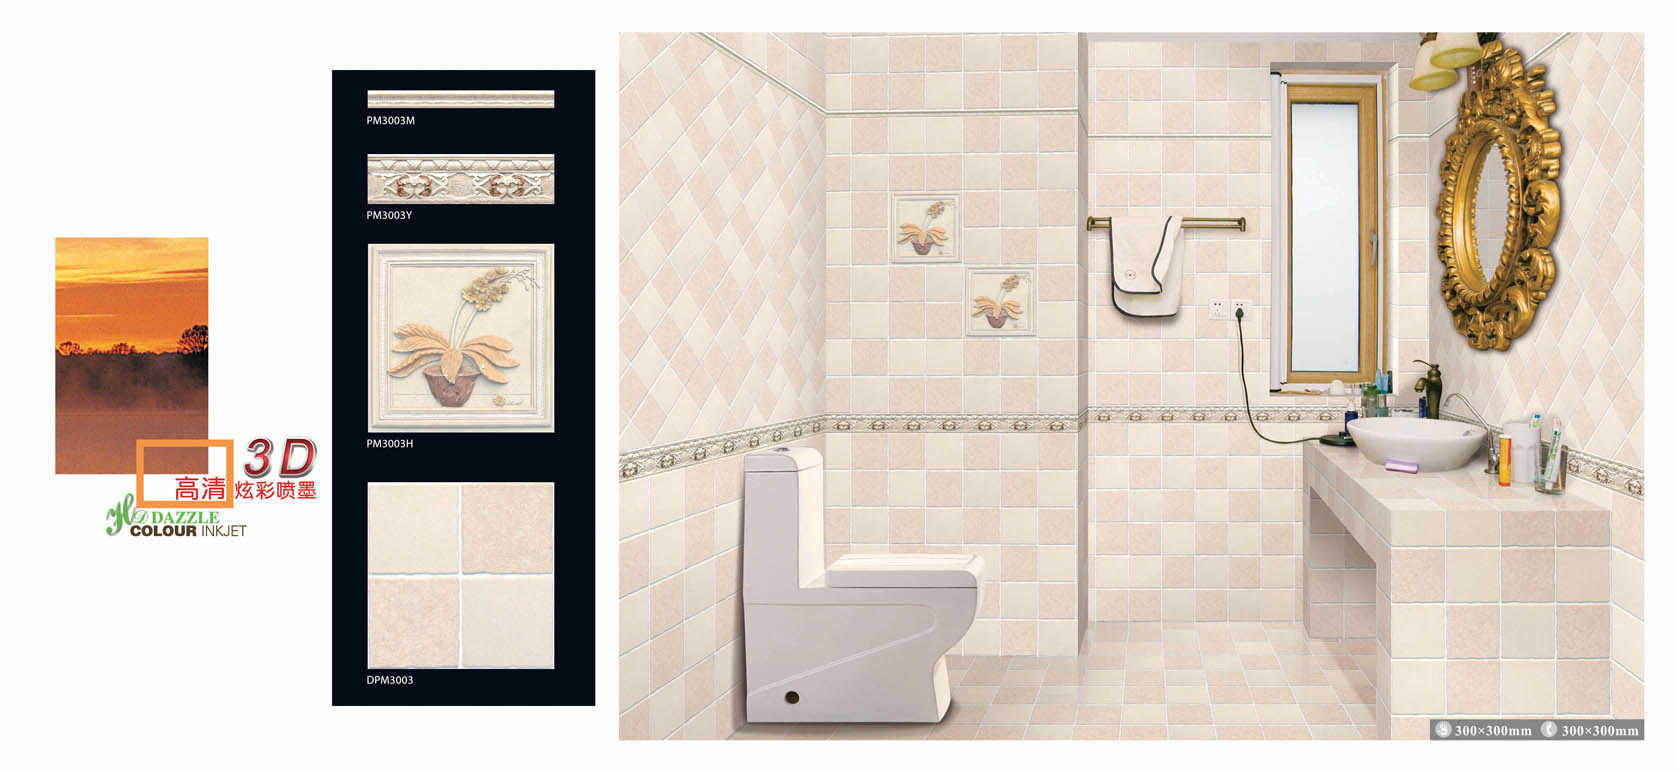 China 3D Bathroom Ceramic Wall Floor Tile Rustic Tiles - China ...